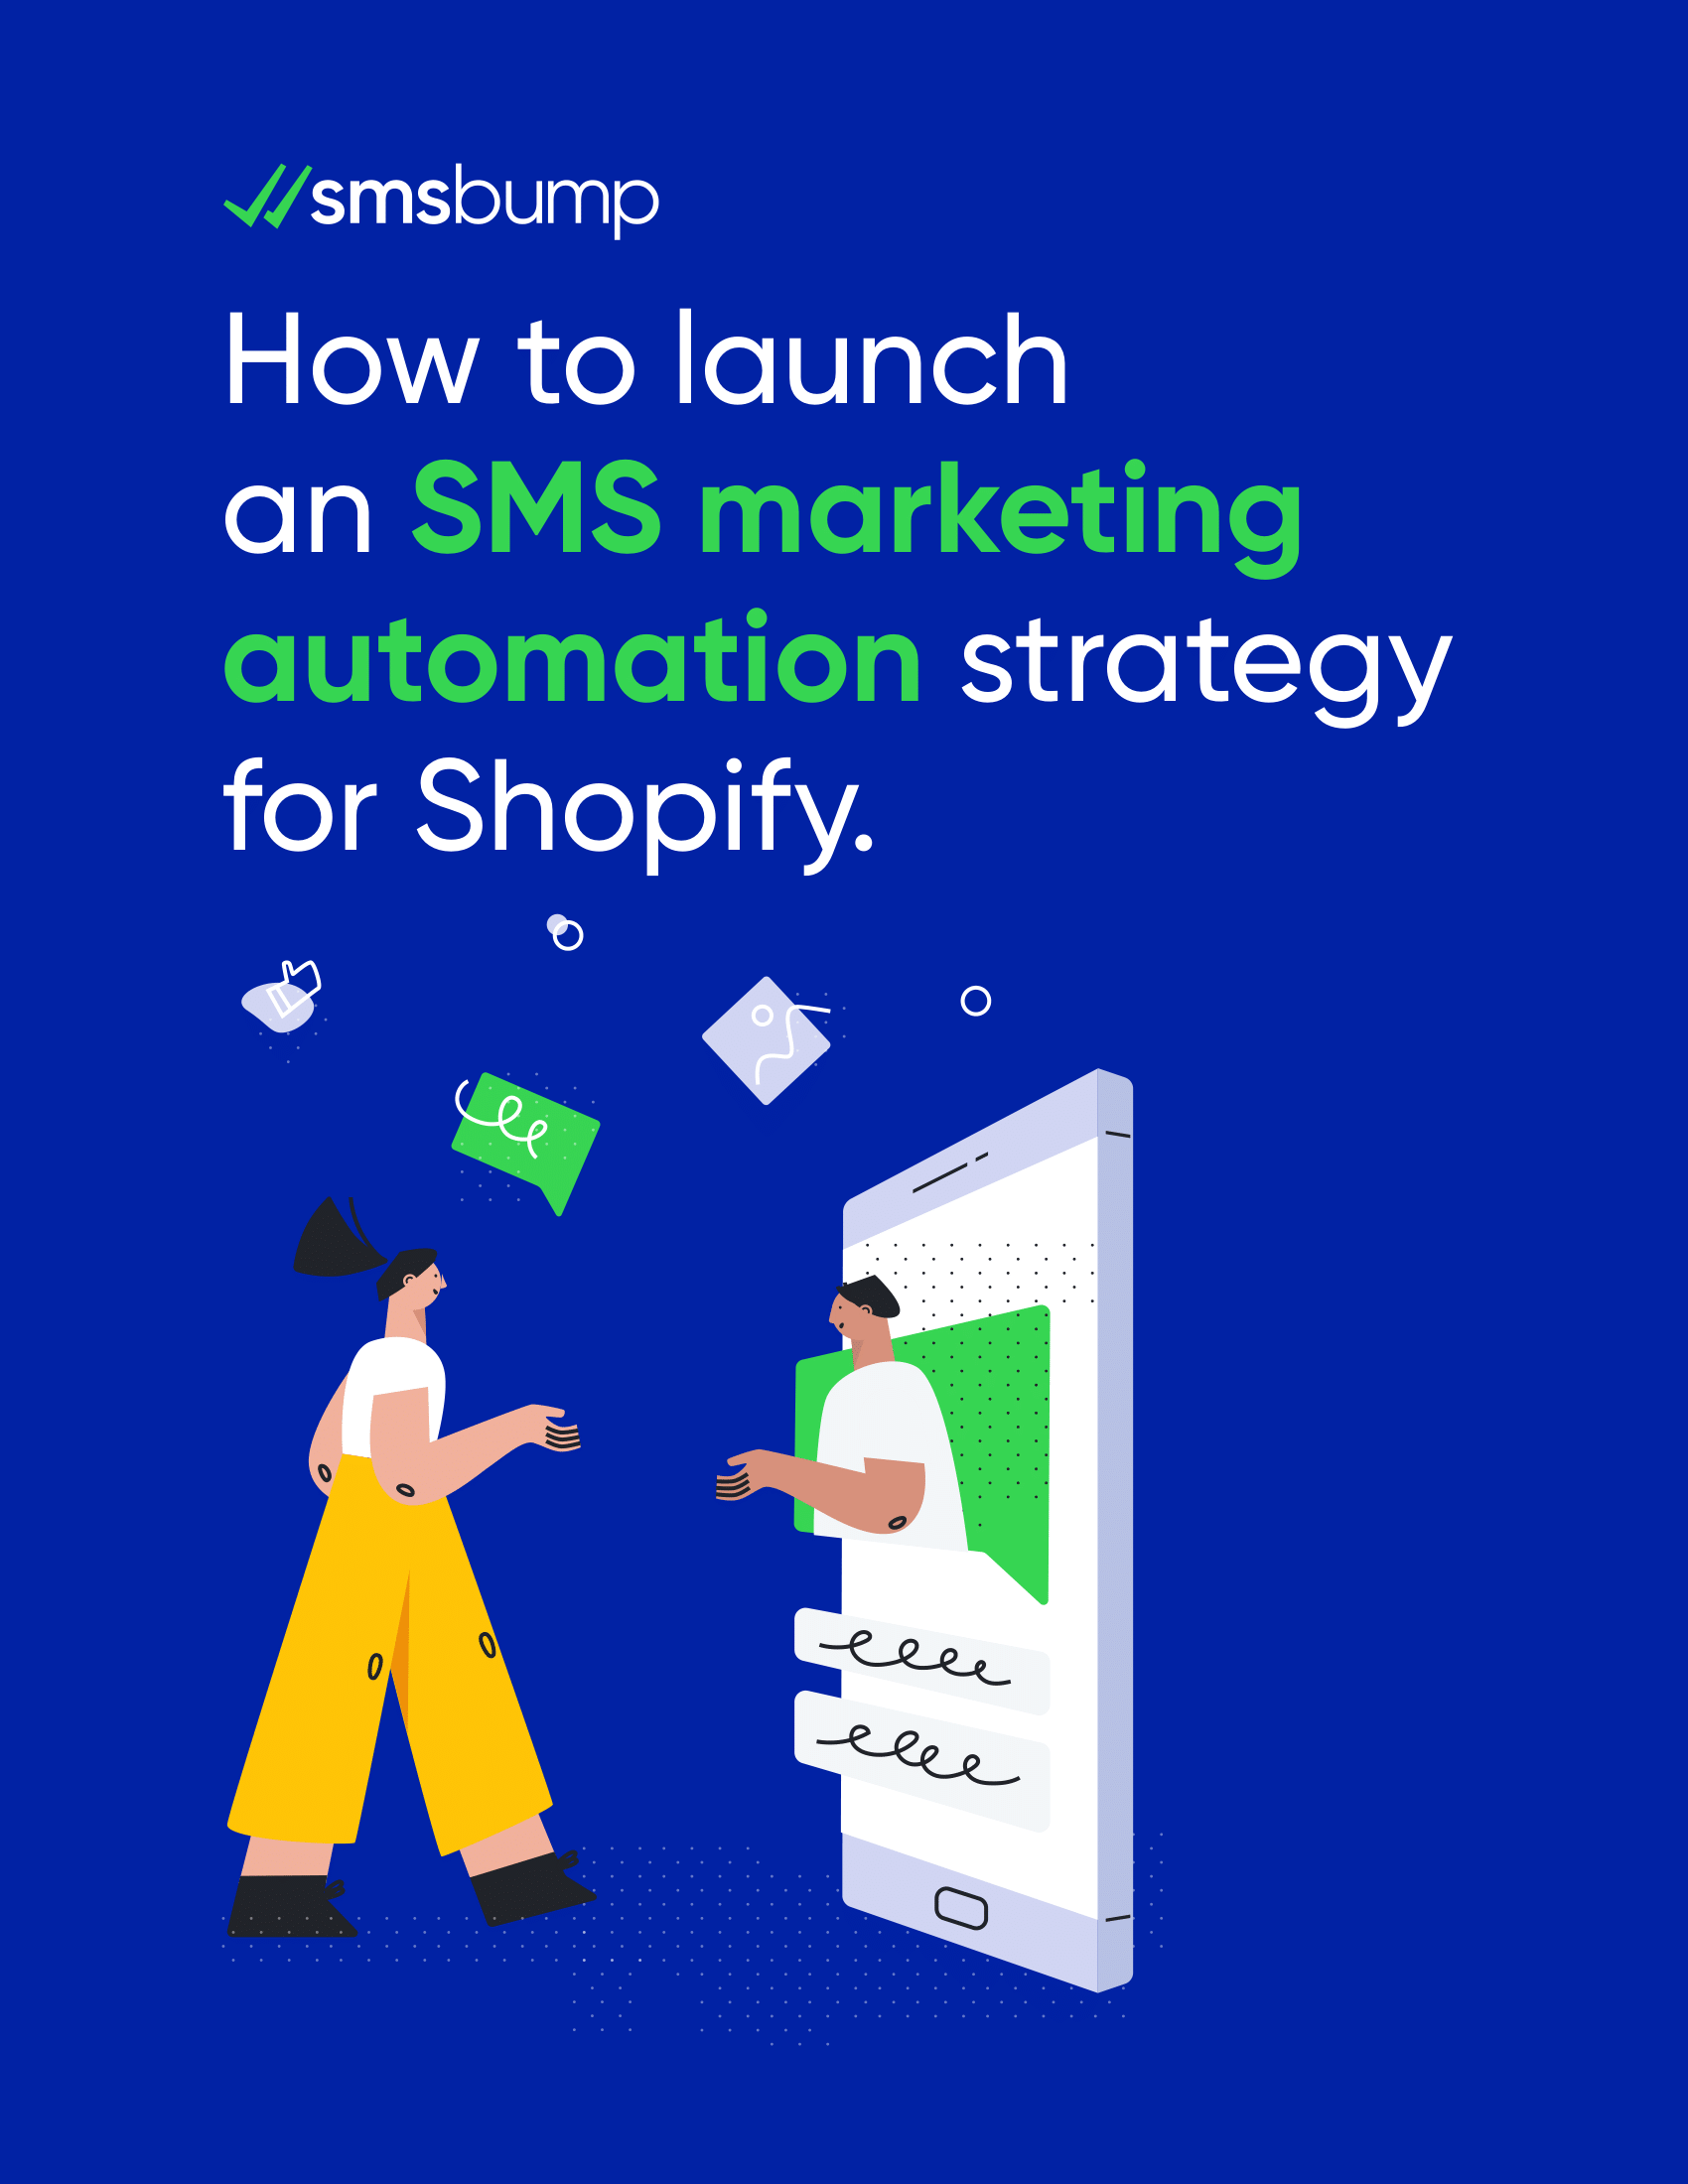 How to launch an SMS marketing automation strategy for Shopify